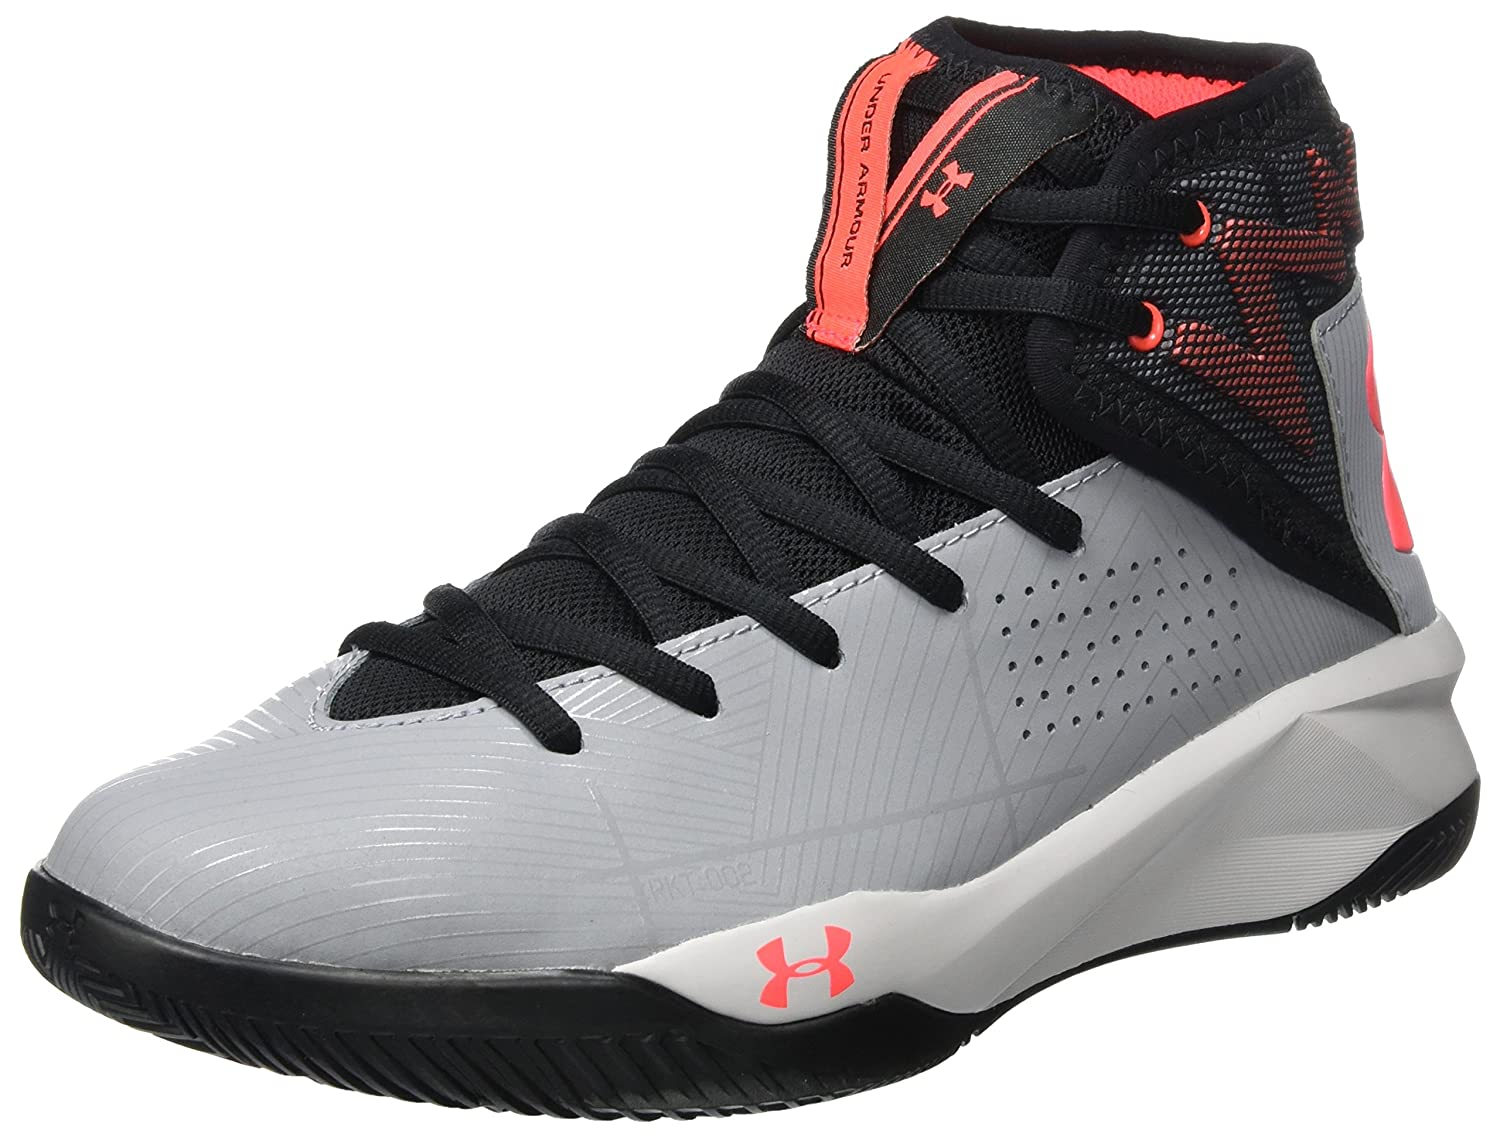 Homme 2Chaussures Under Ua Basketball Armour De Rocket Ibgvf6yY7